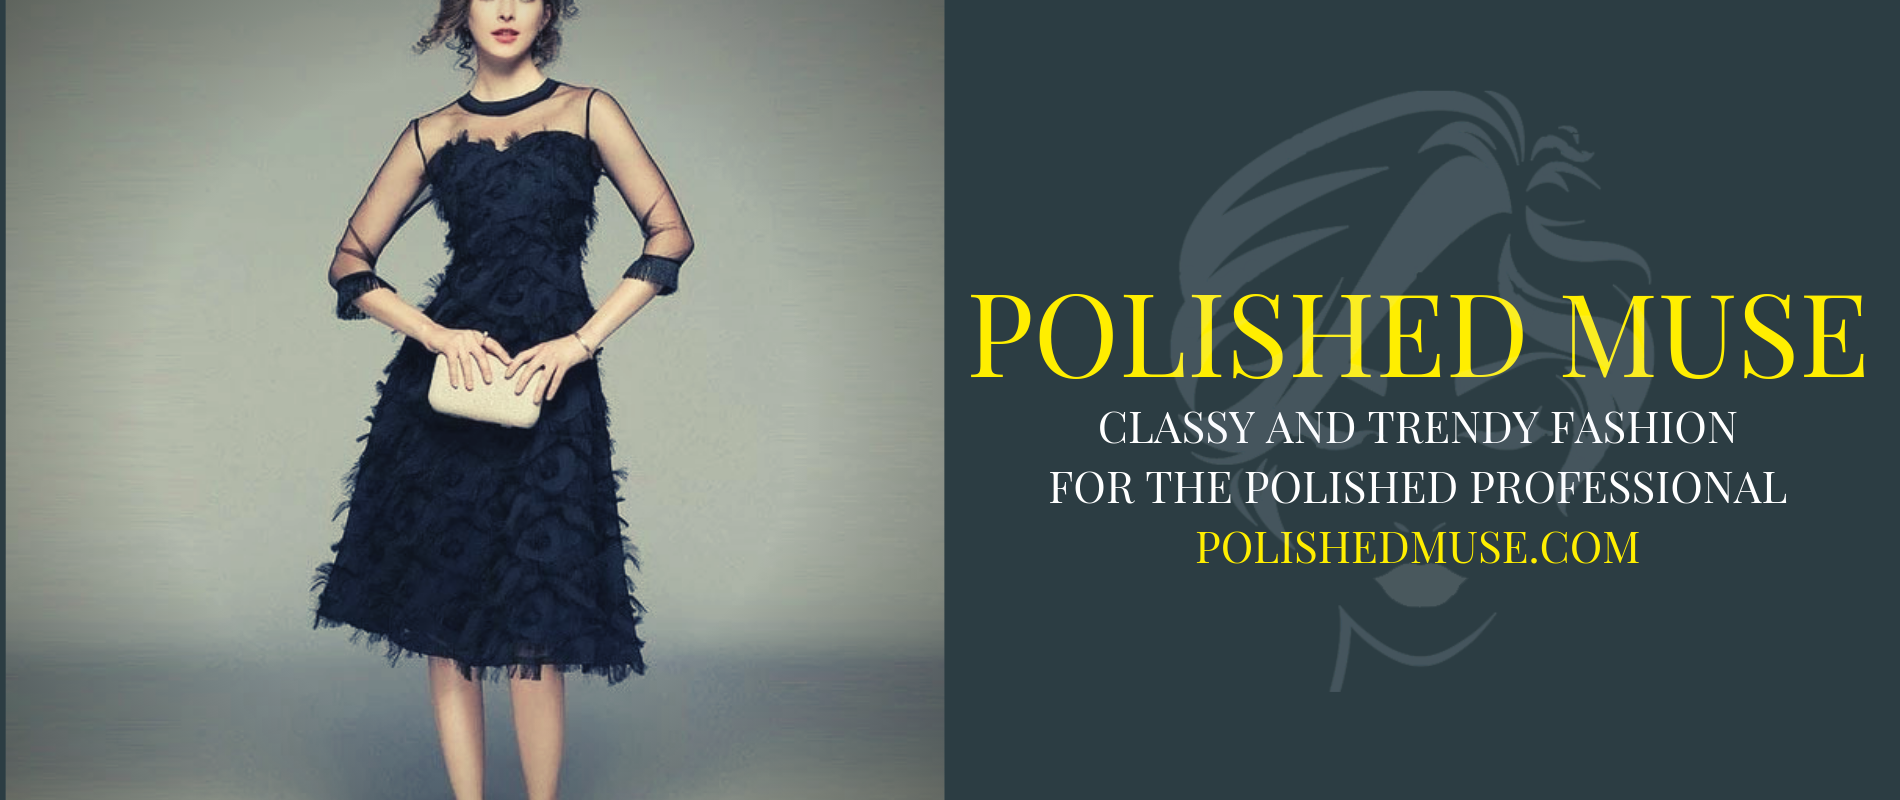 Shop classy and professional fashion by Polished Muse